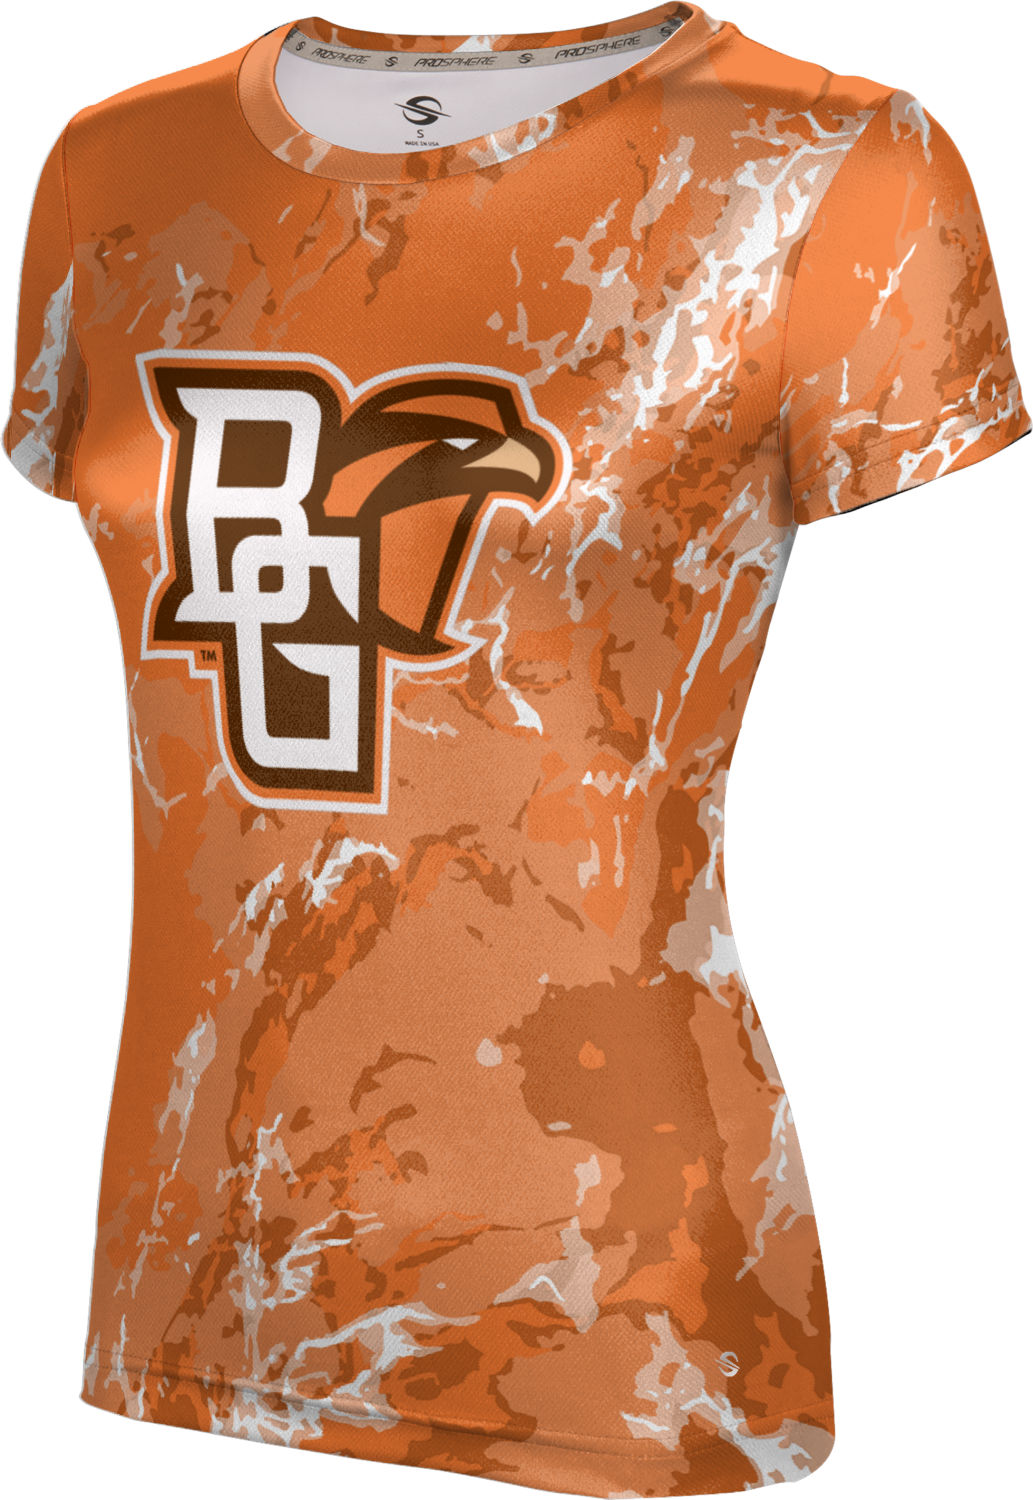 ProSphere Girls' Bowling Green State University Marble Tech Tee